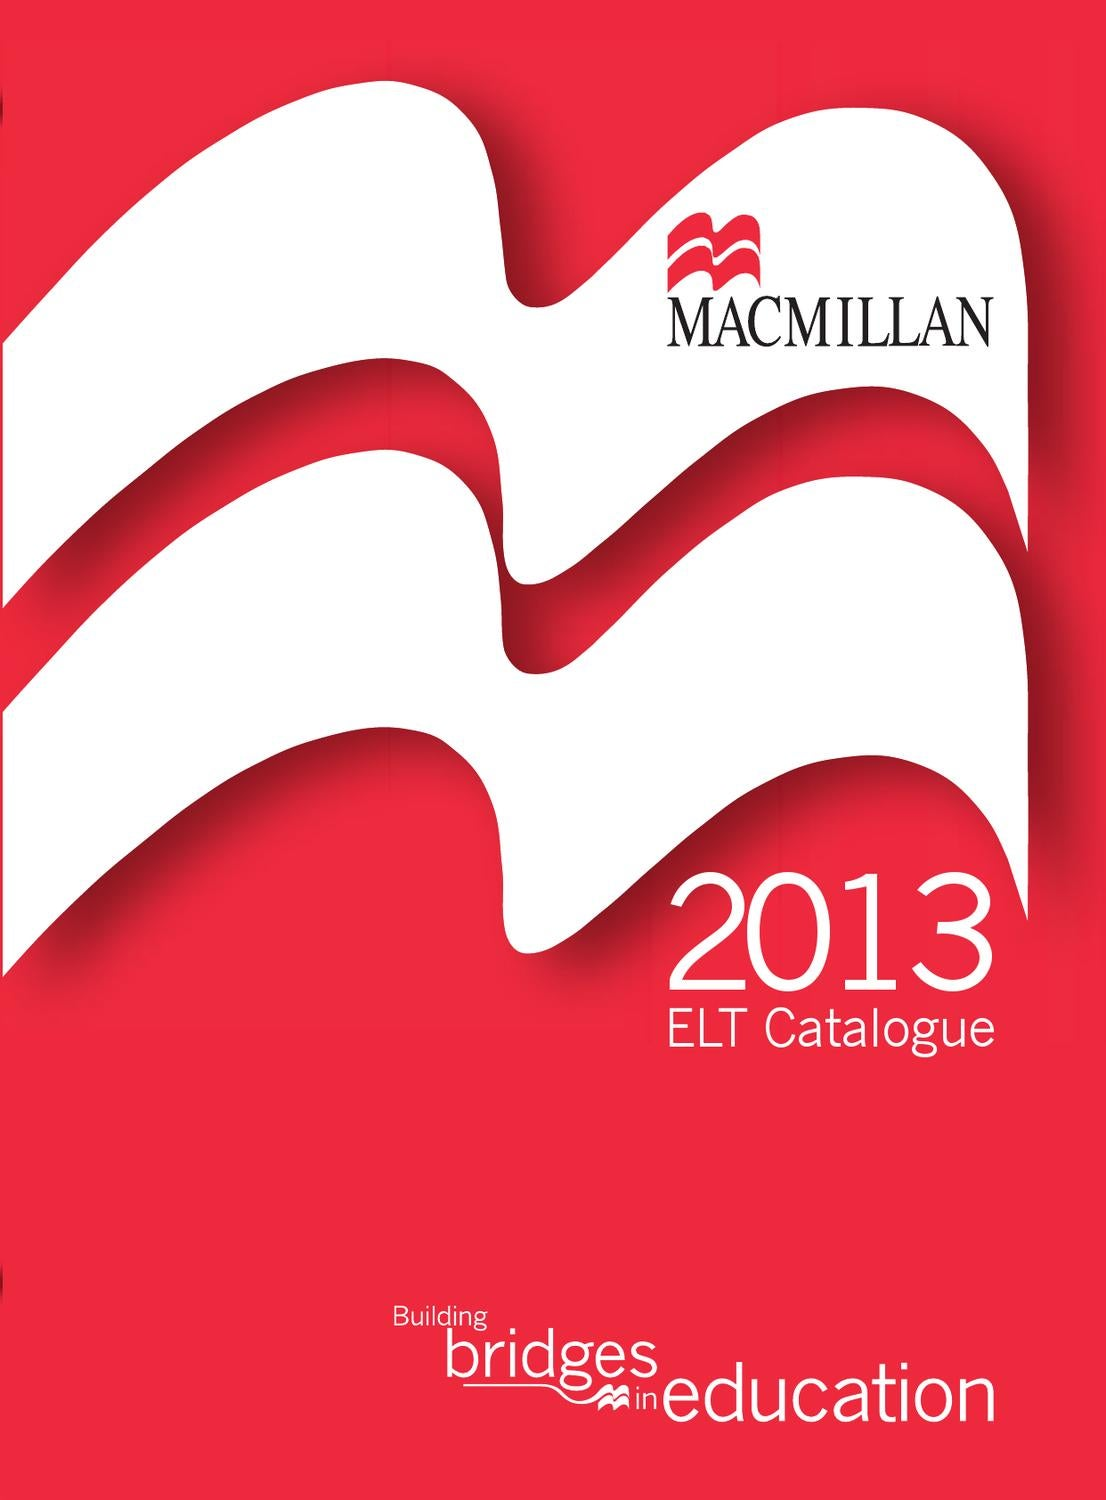 Macmillan argentina 2013 catatogue by macmillan education issuu fandeluxe Image collections